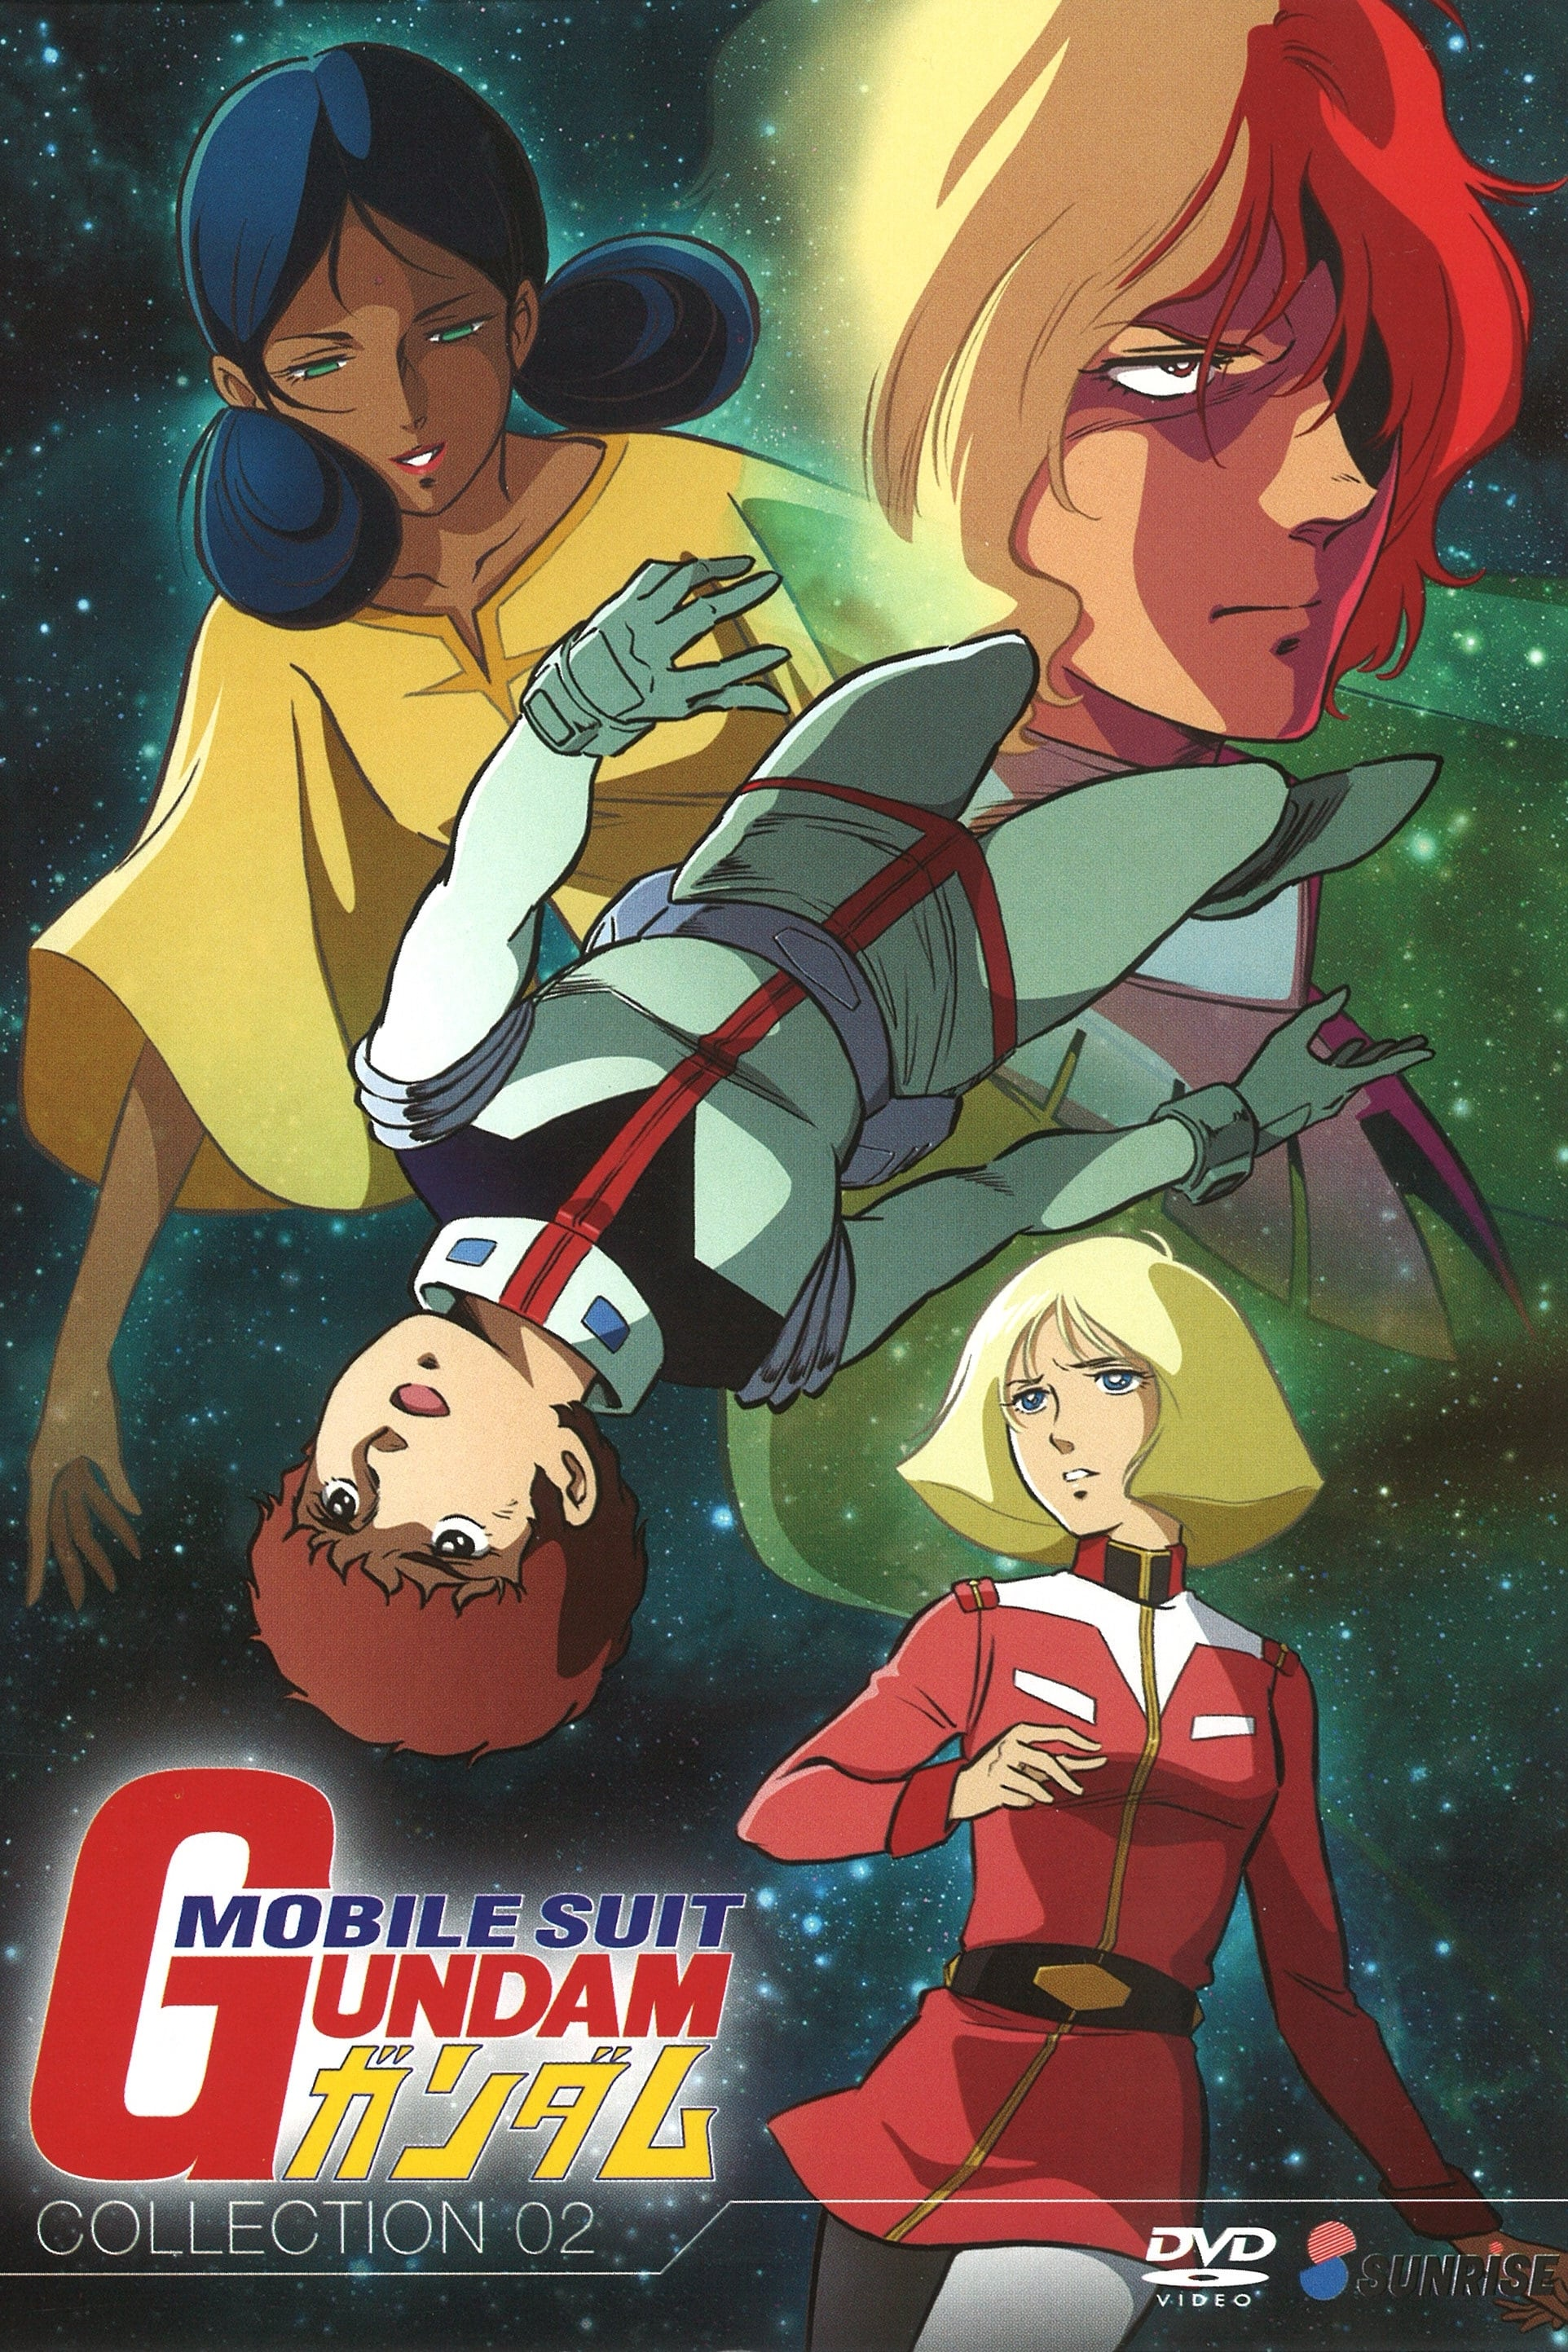 Mobile Suit Gundam (1979)